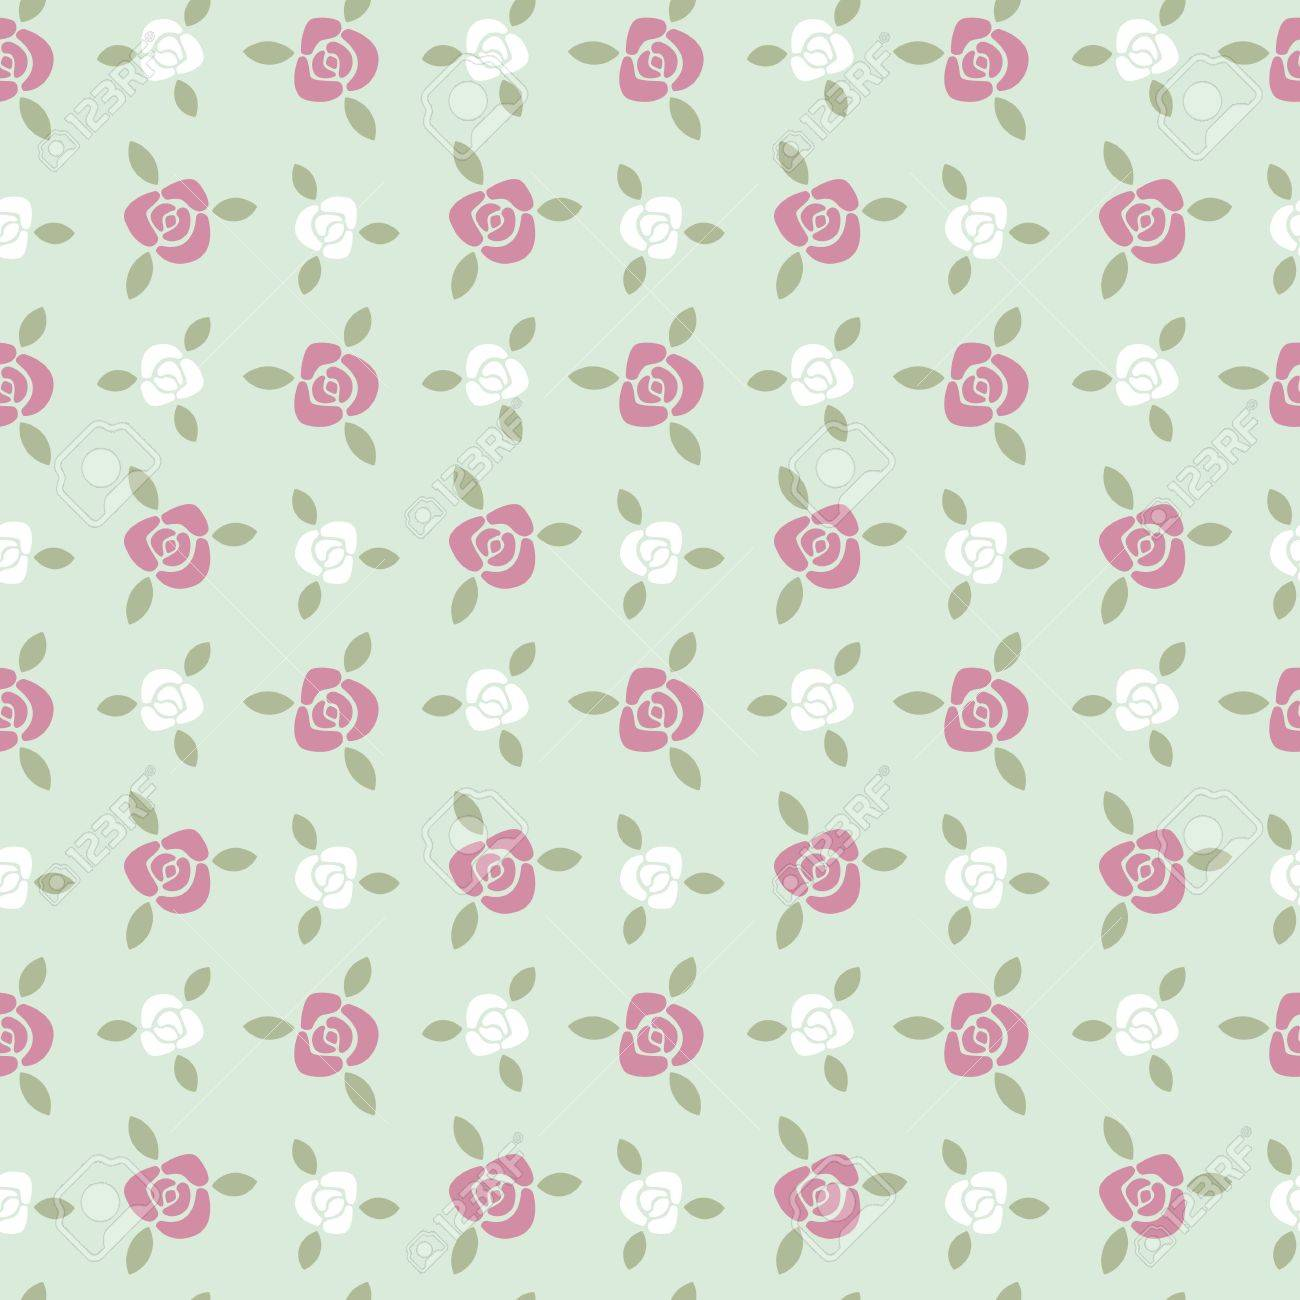 Tiny Roses With Leaves Seamless Pattern Simple Floral Background